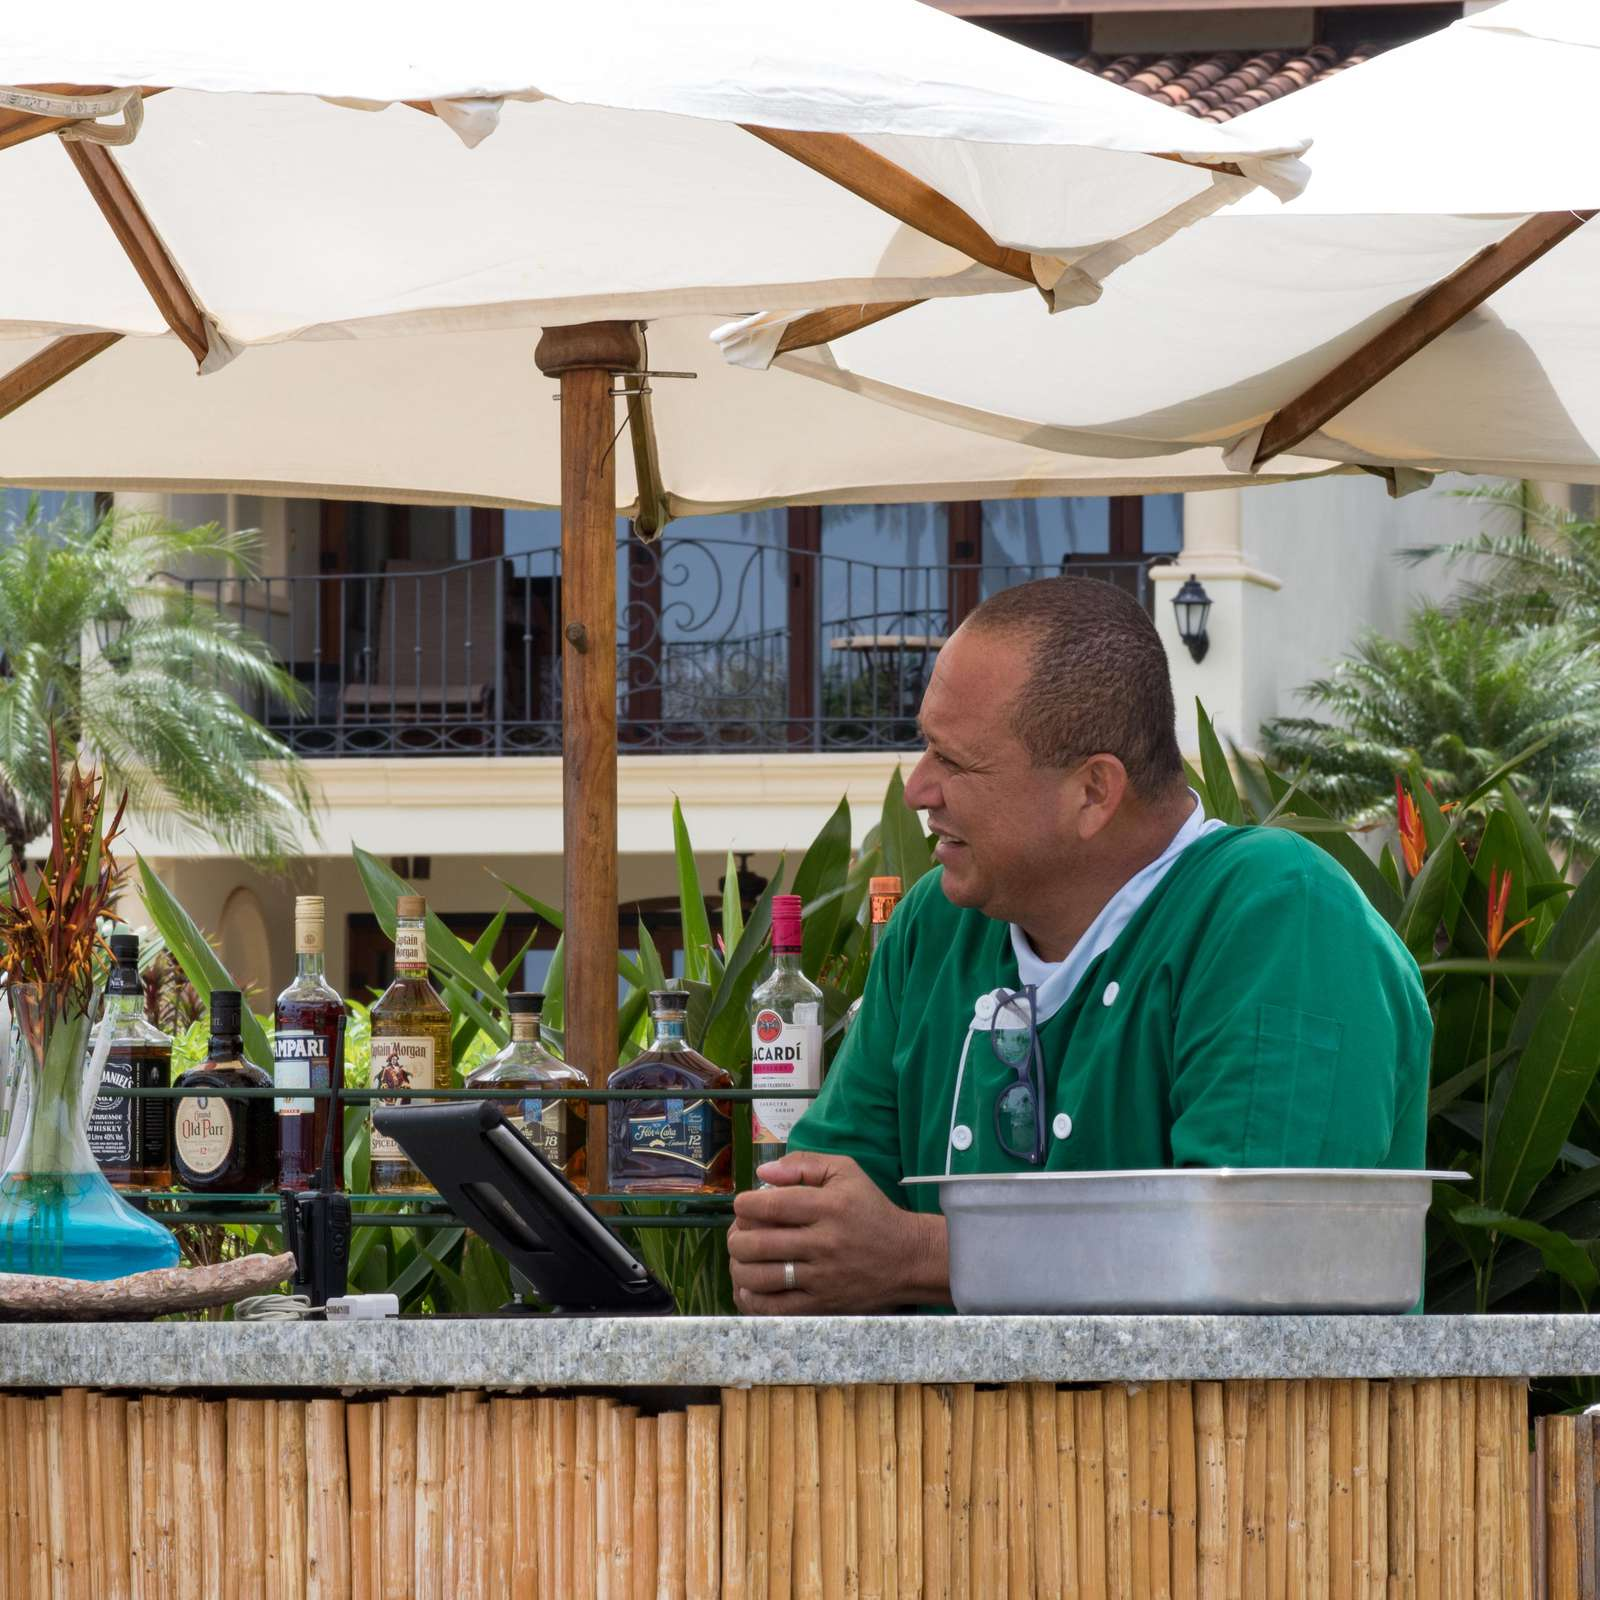 Full service poolside bar at the Palms